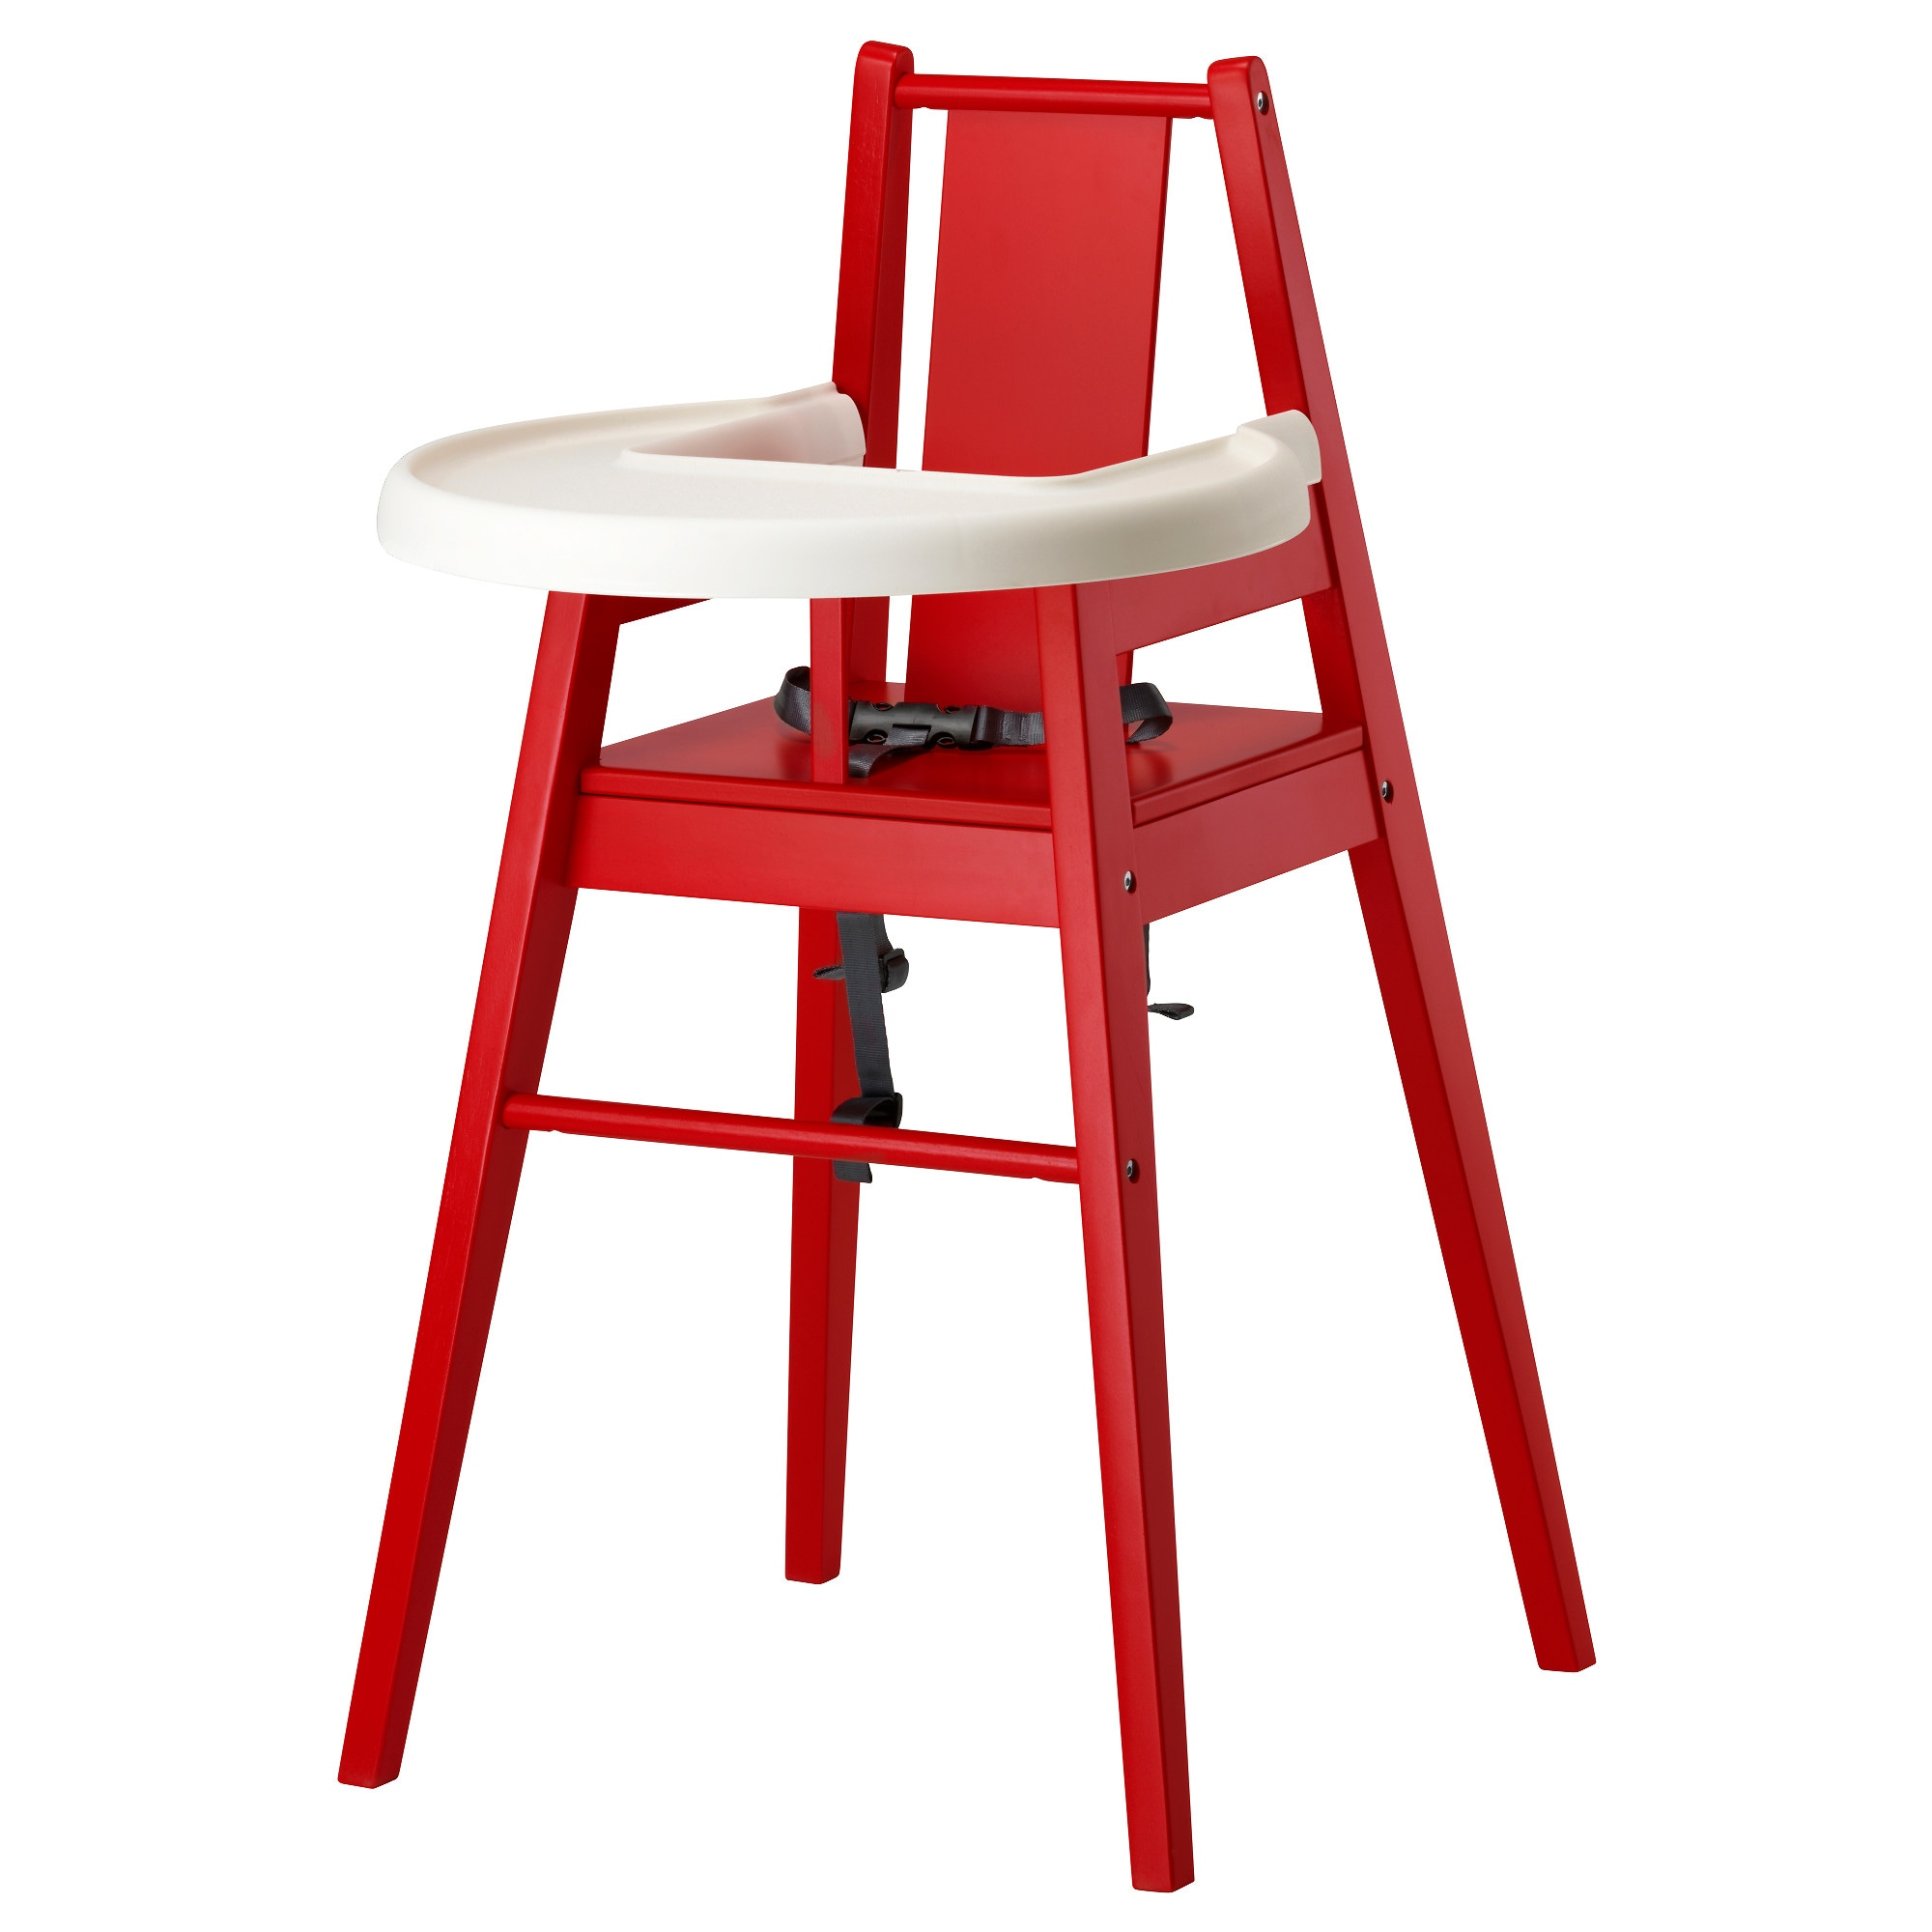 Baby chair for restaurant - Bl Mes Highchair With Tray Red Width 20 1 8 Depth 21